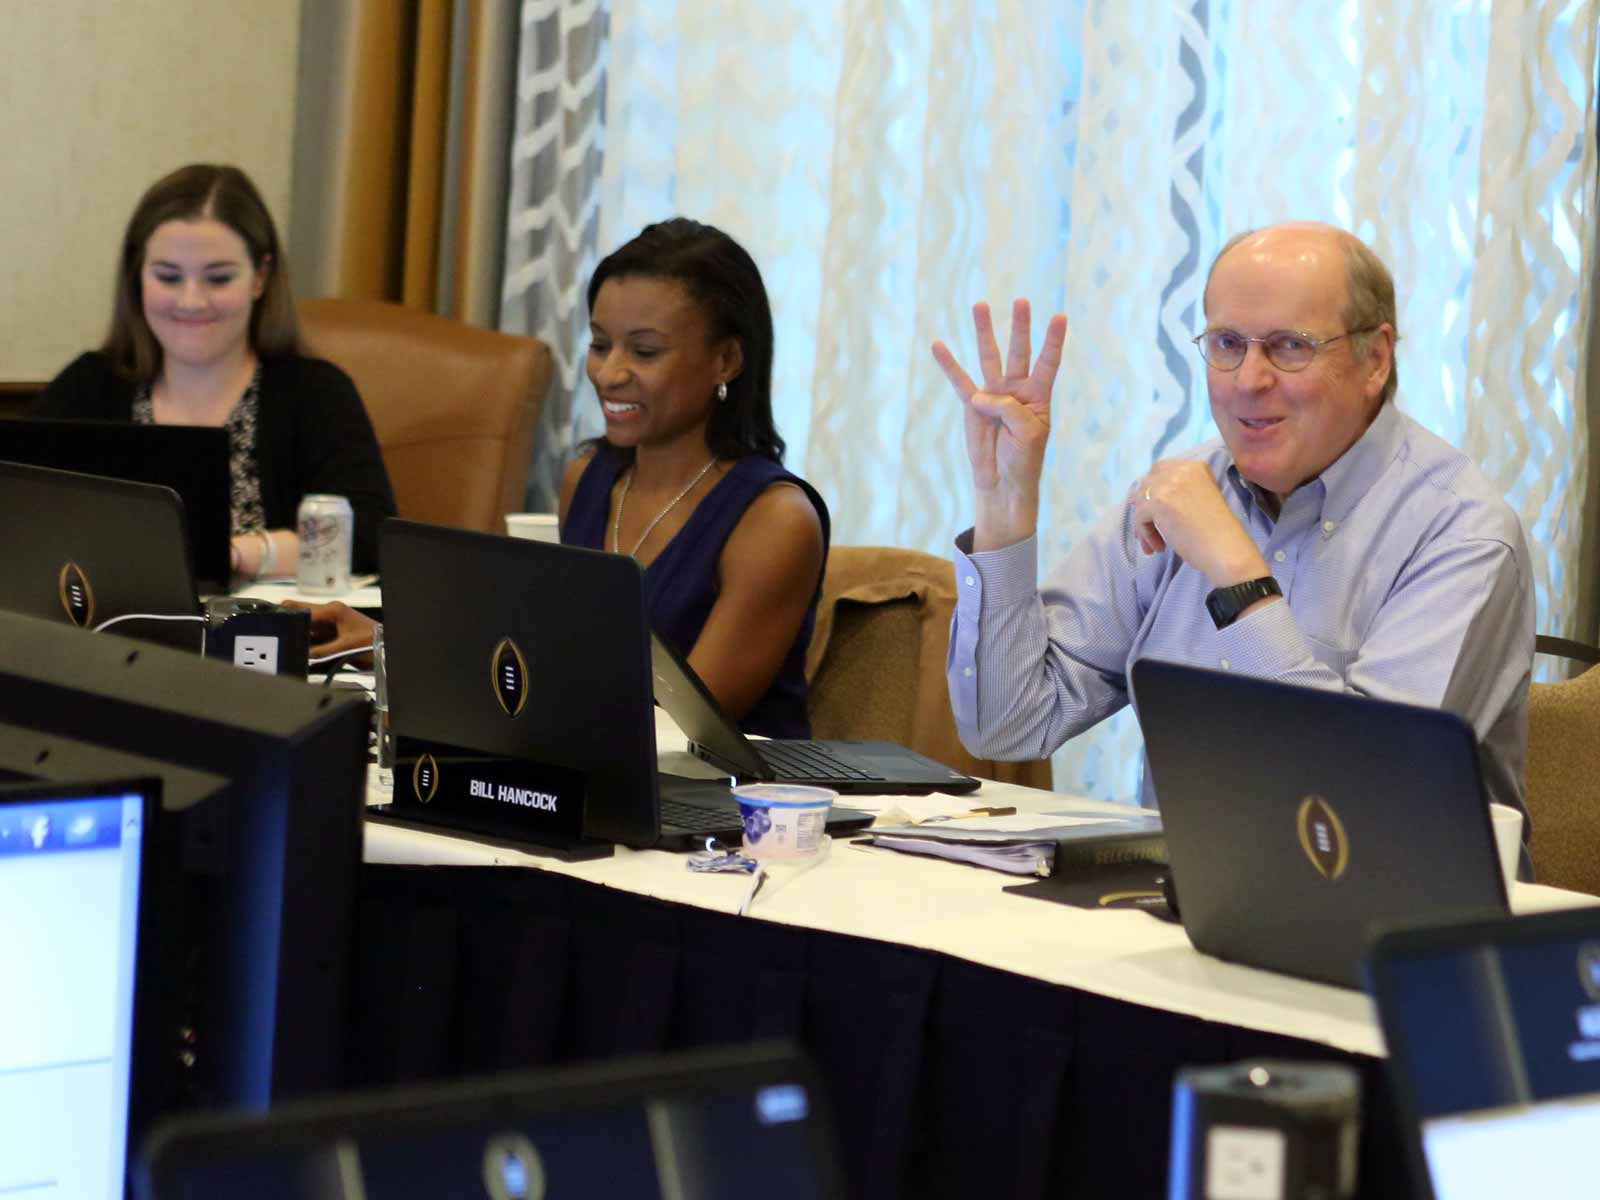 CFP executive director Bill Hancock sits next to Laila Brock during a committee meeting. In the background to the left is Gina Lehe's corner desk. A replacement sits in her seat. She was delivering her second daughter at the time of this meeting.